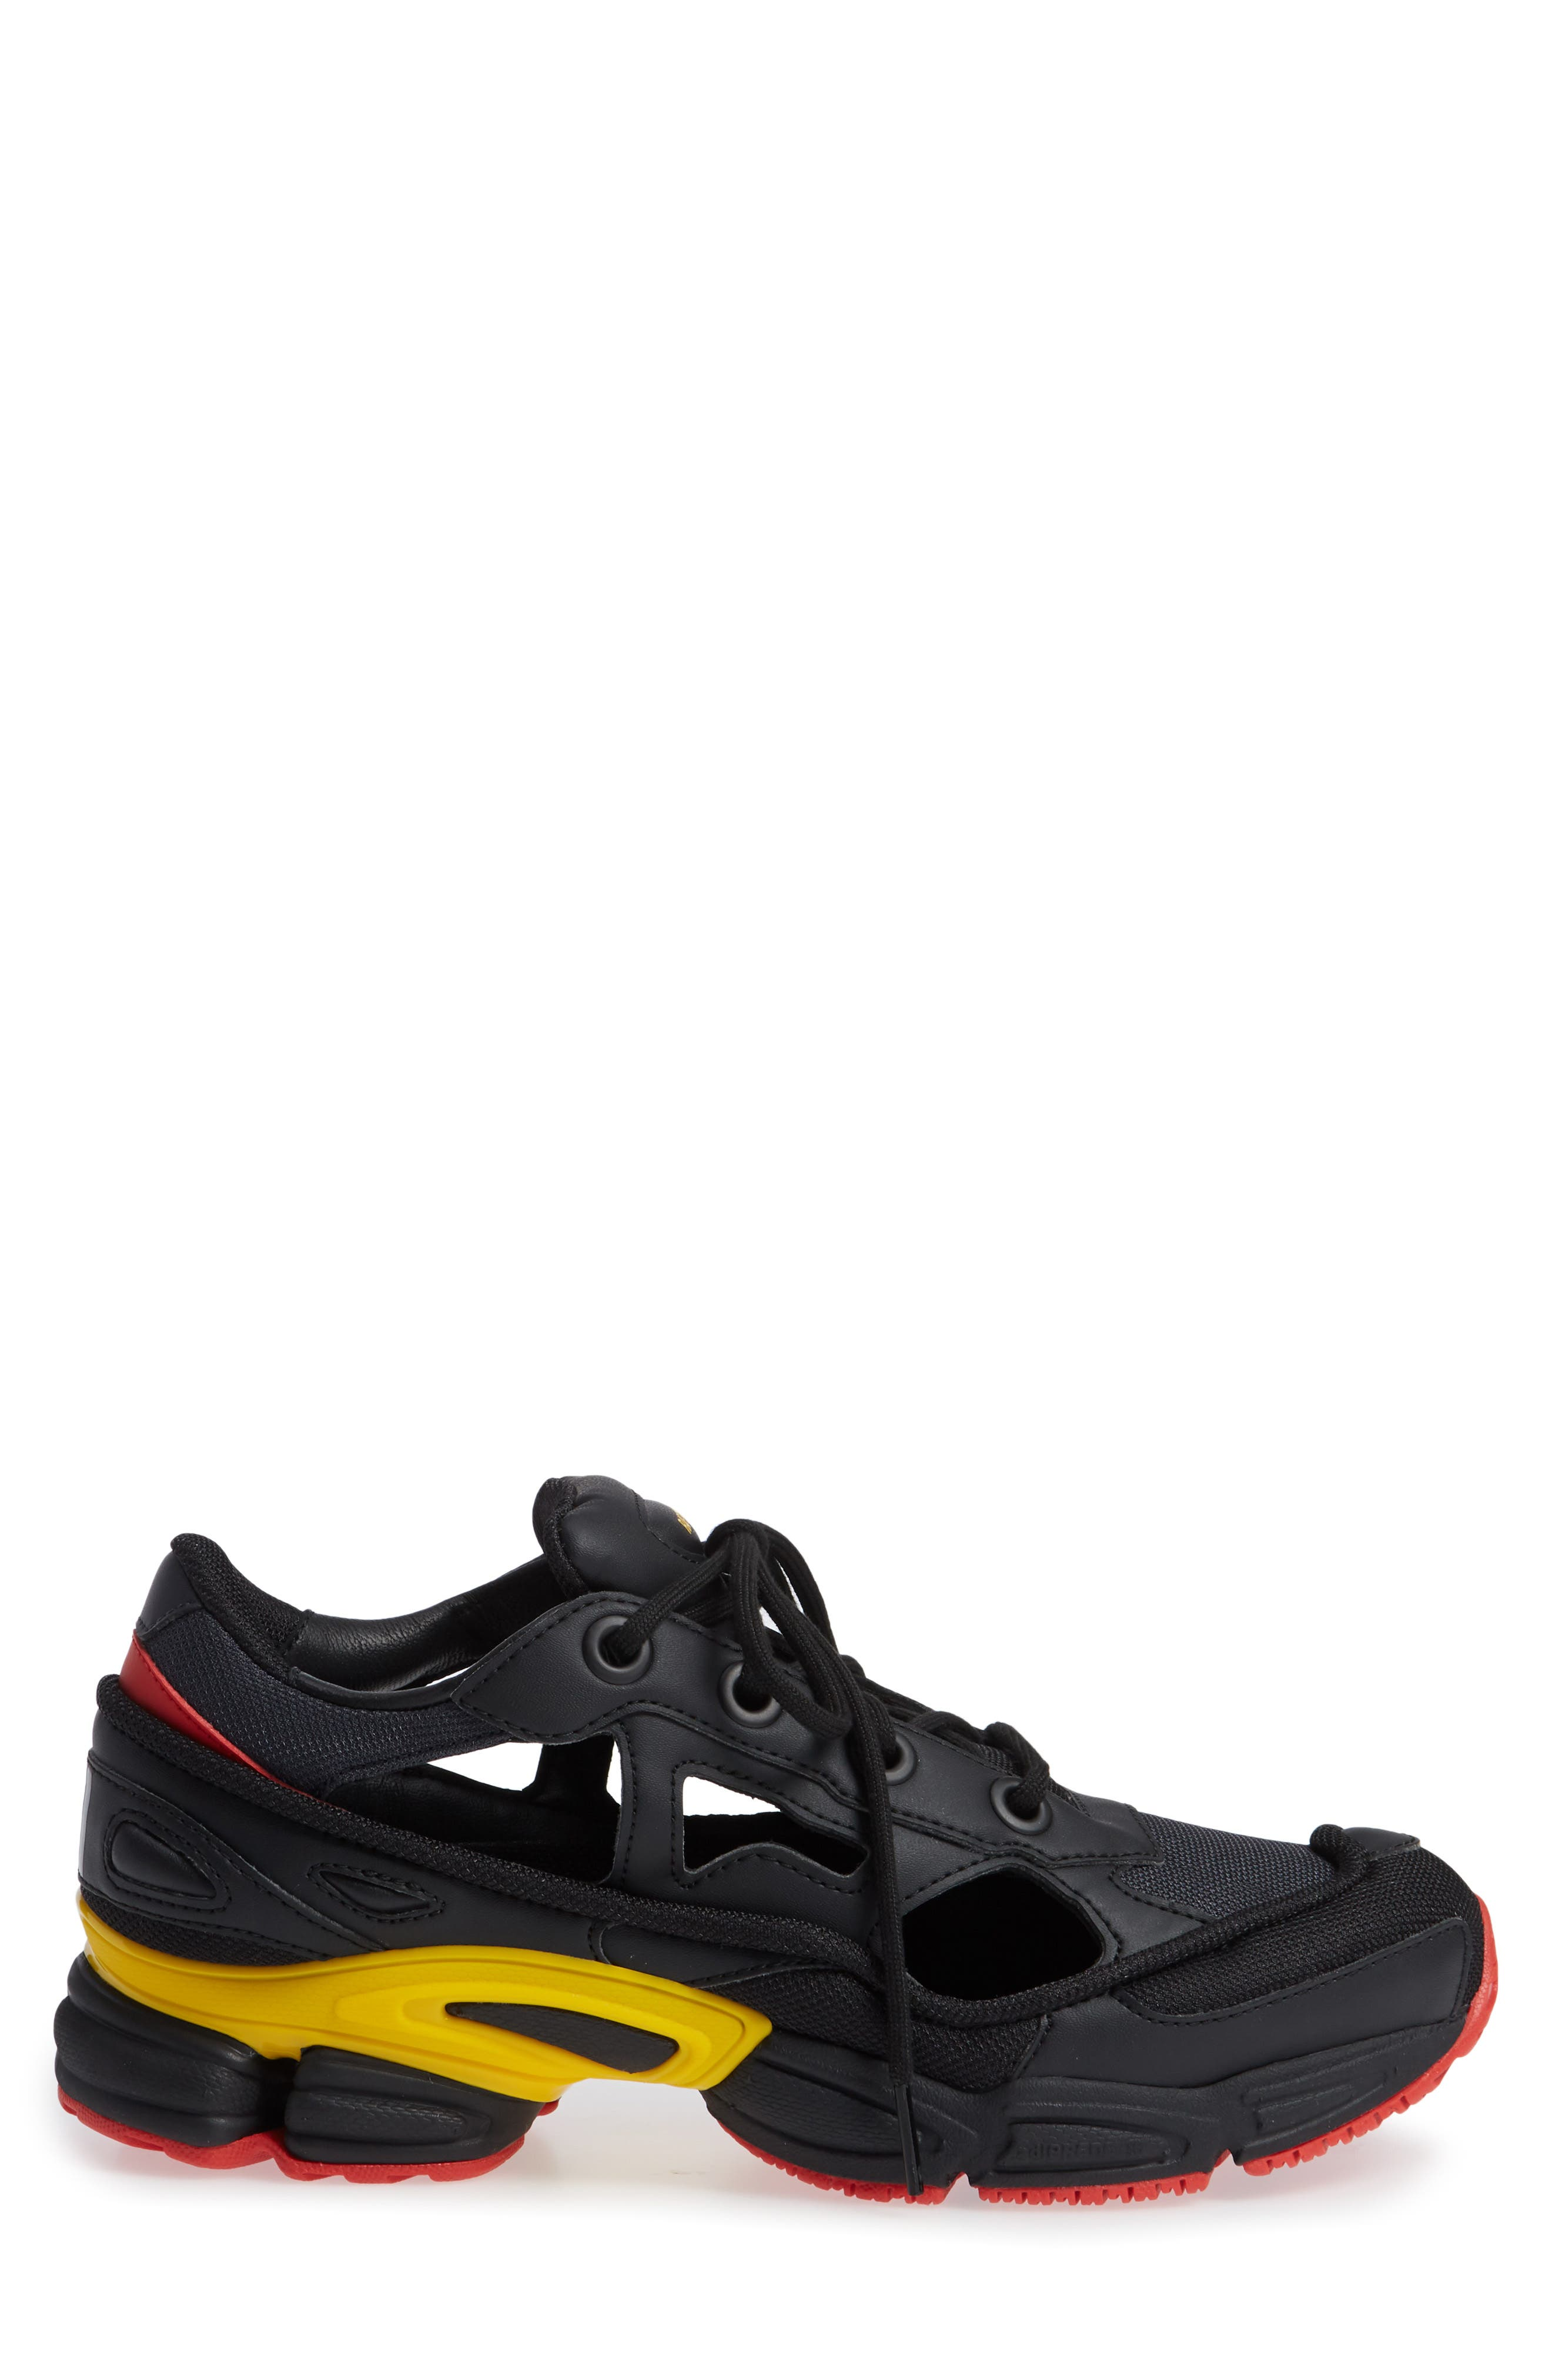 adidas by Raf Simons Replicant Ozweego Sneaker,                             Alternate thumbnail 3, color,                             CORE BLACK/ NIGHT GREY